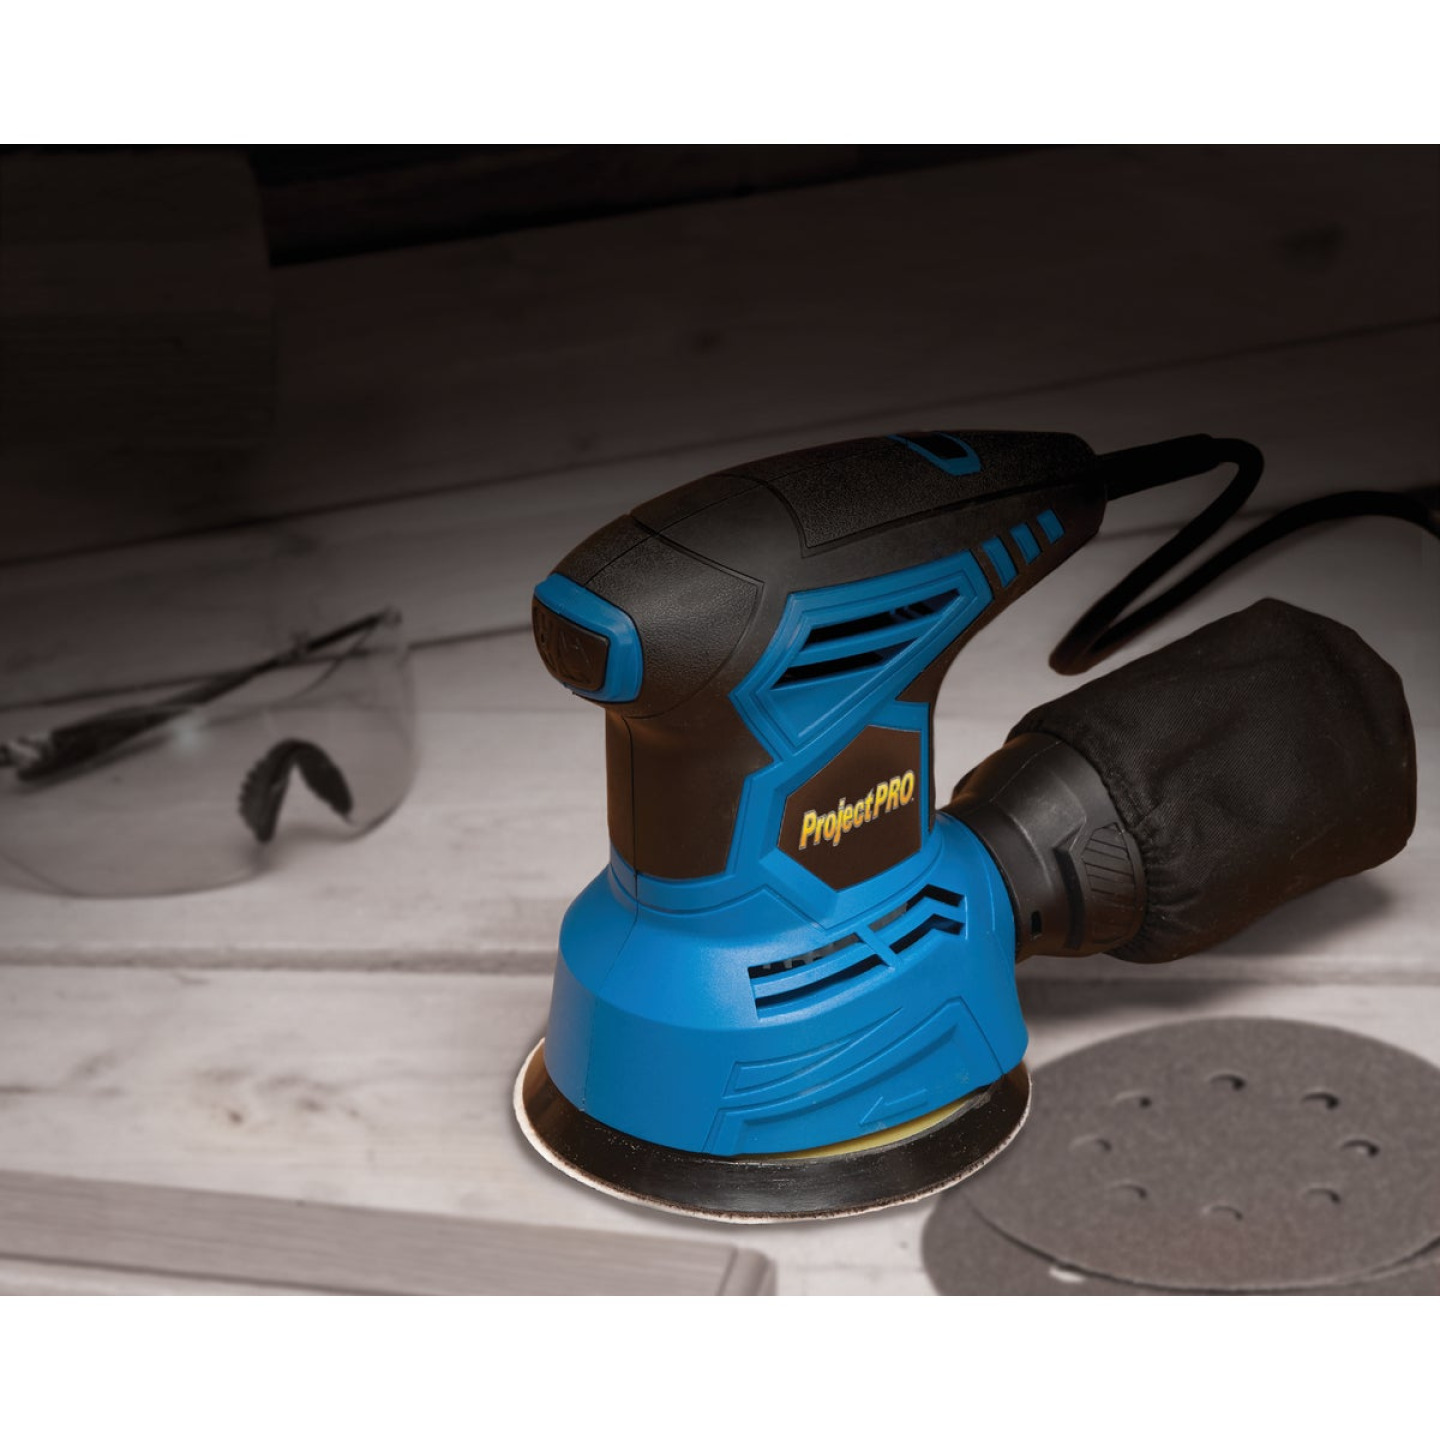 Project Pro 5 In. 2.0A Random Orbit Sander Kit Image 2